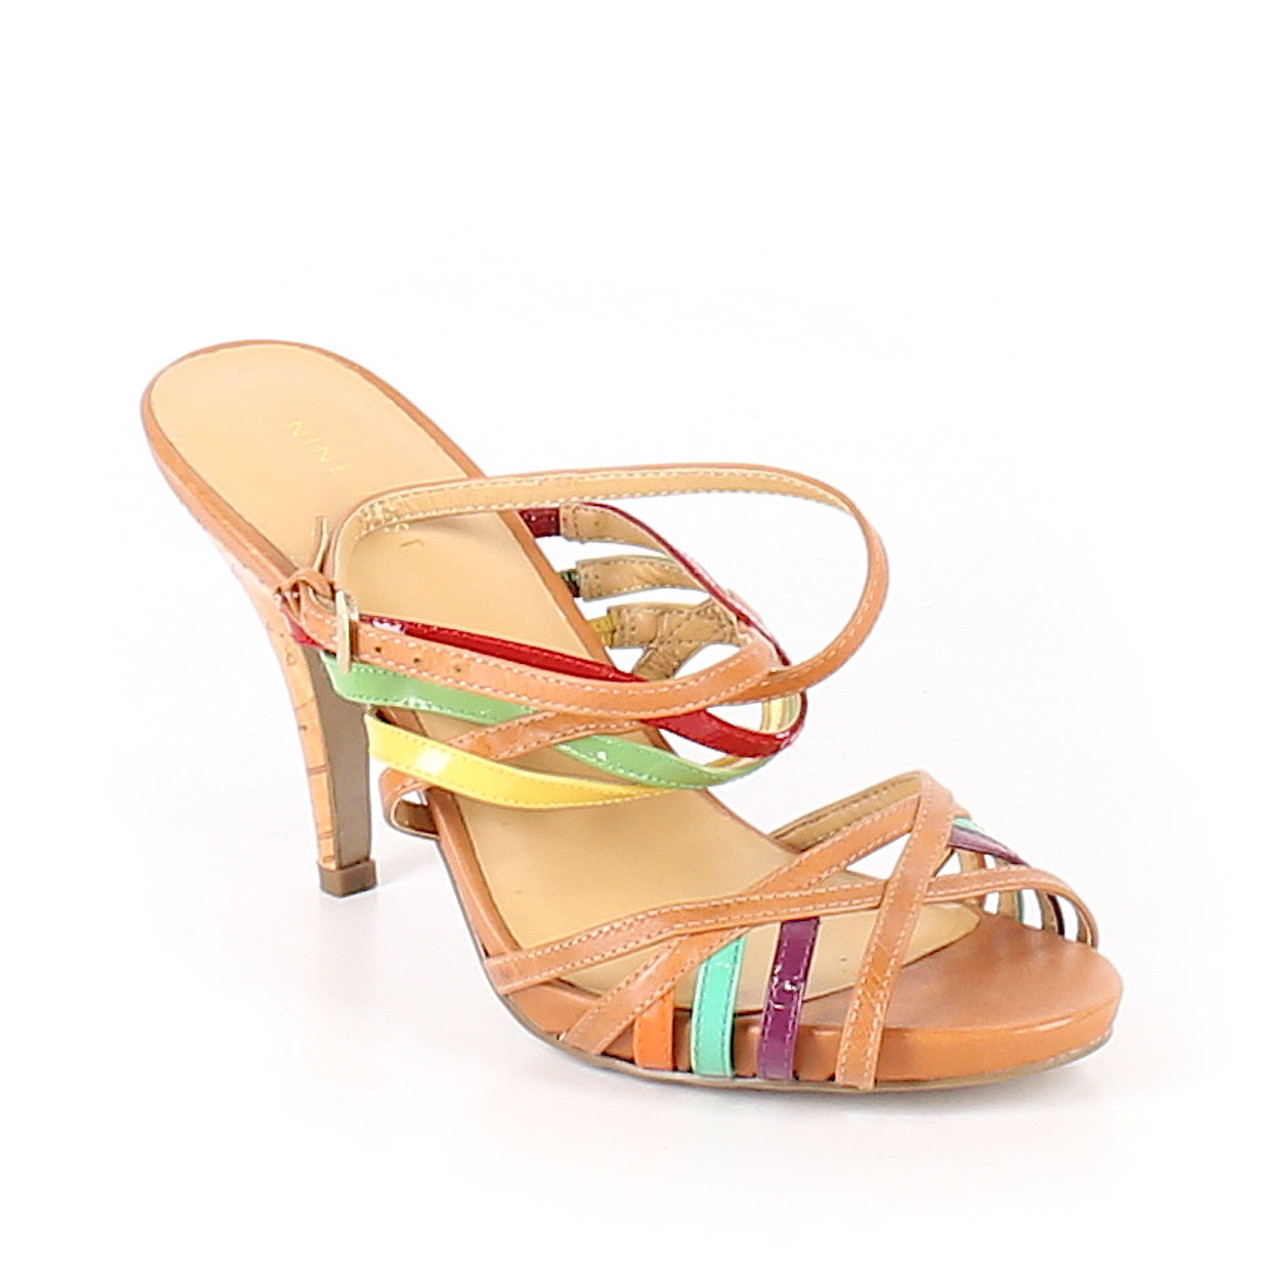 ade1b3299 Nine West Multi Color Open Toe Strappy Sandals